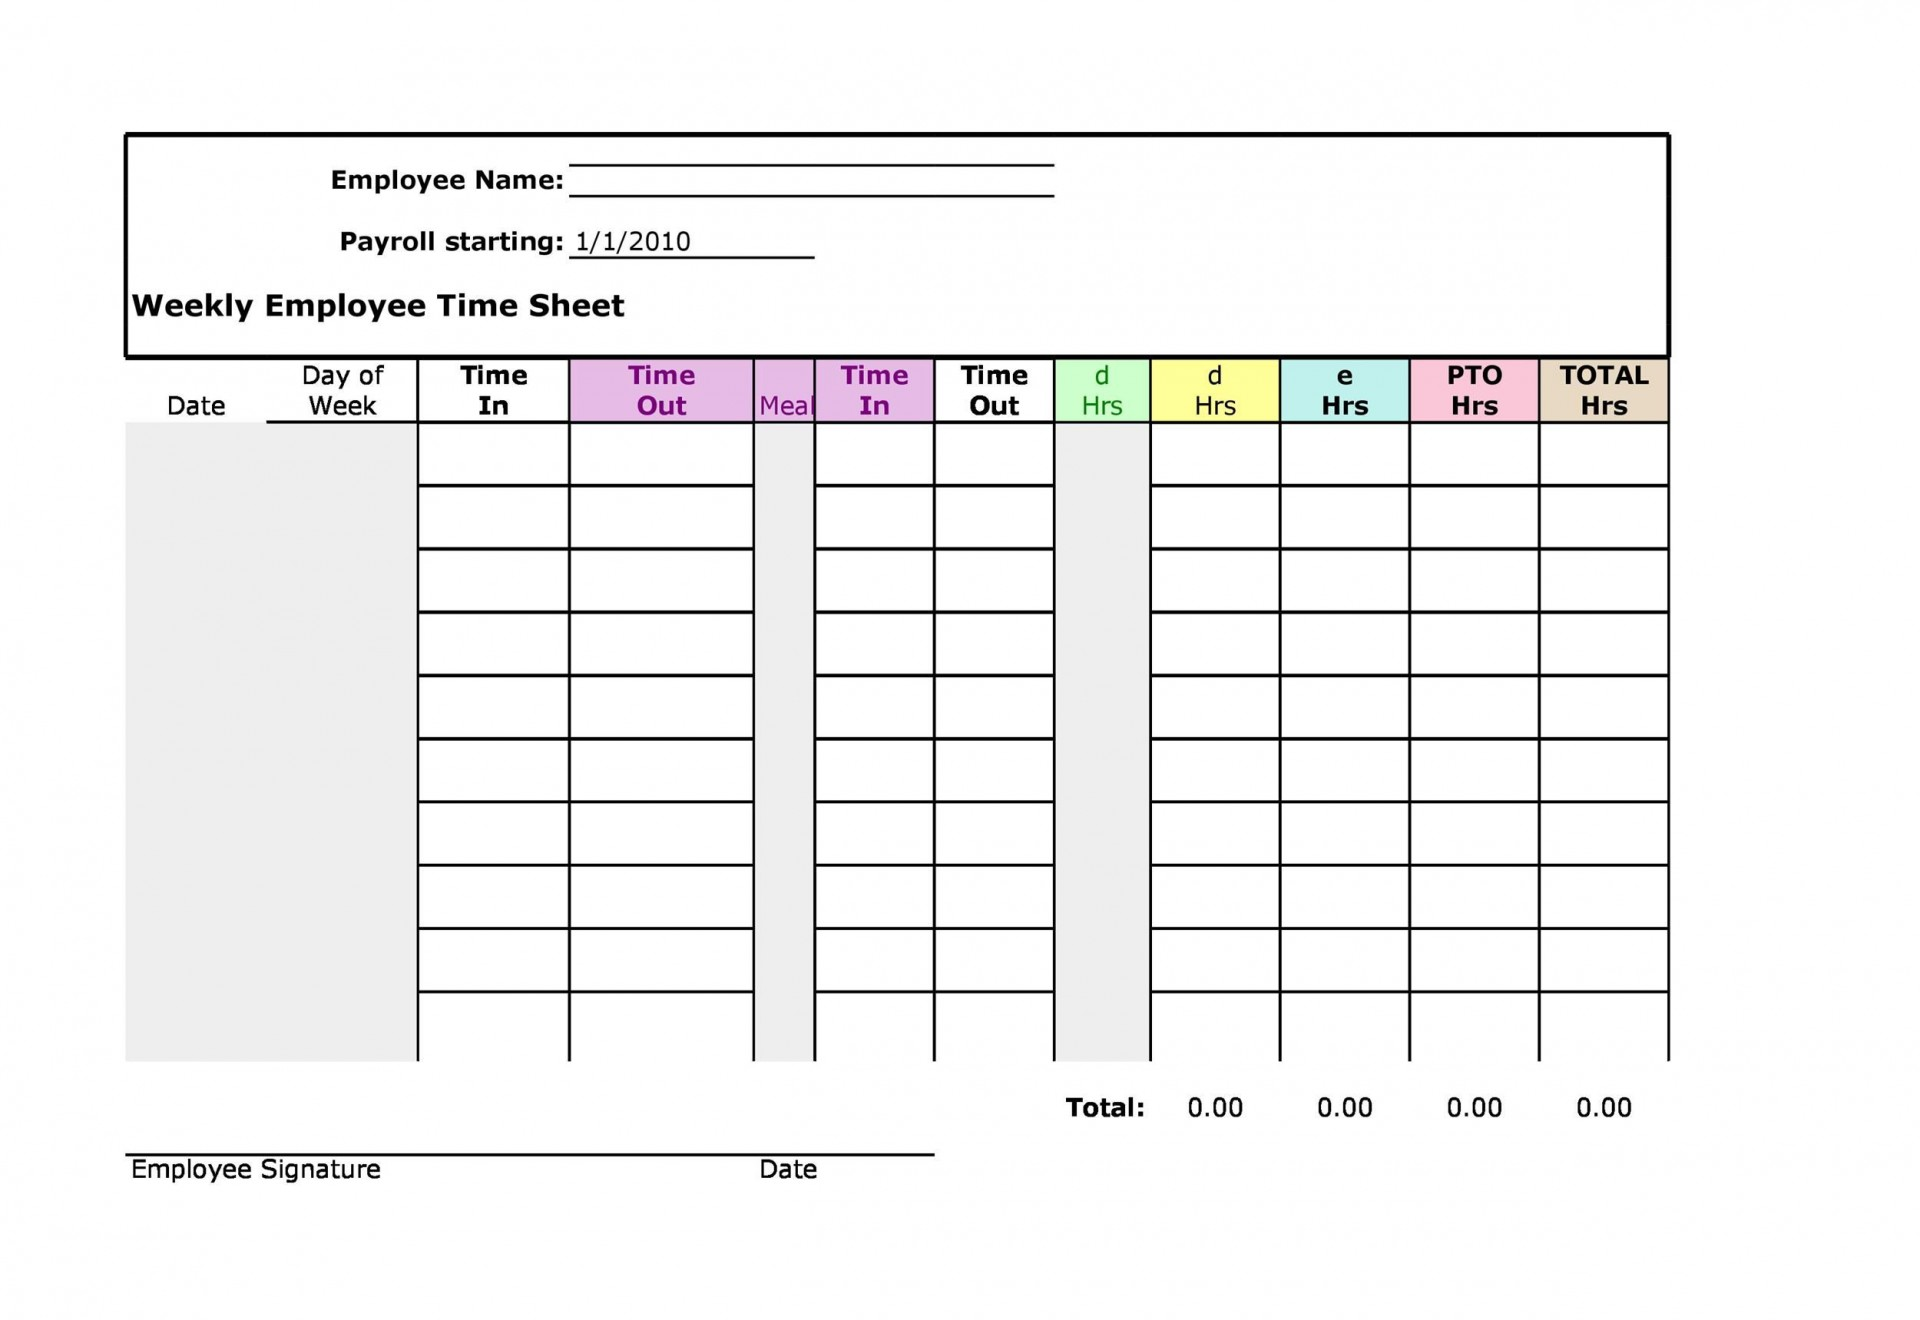 008 Amazing Employee Time Card Printable High Def  Timesheet Template Excel Free Multiple Sheet1920